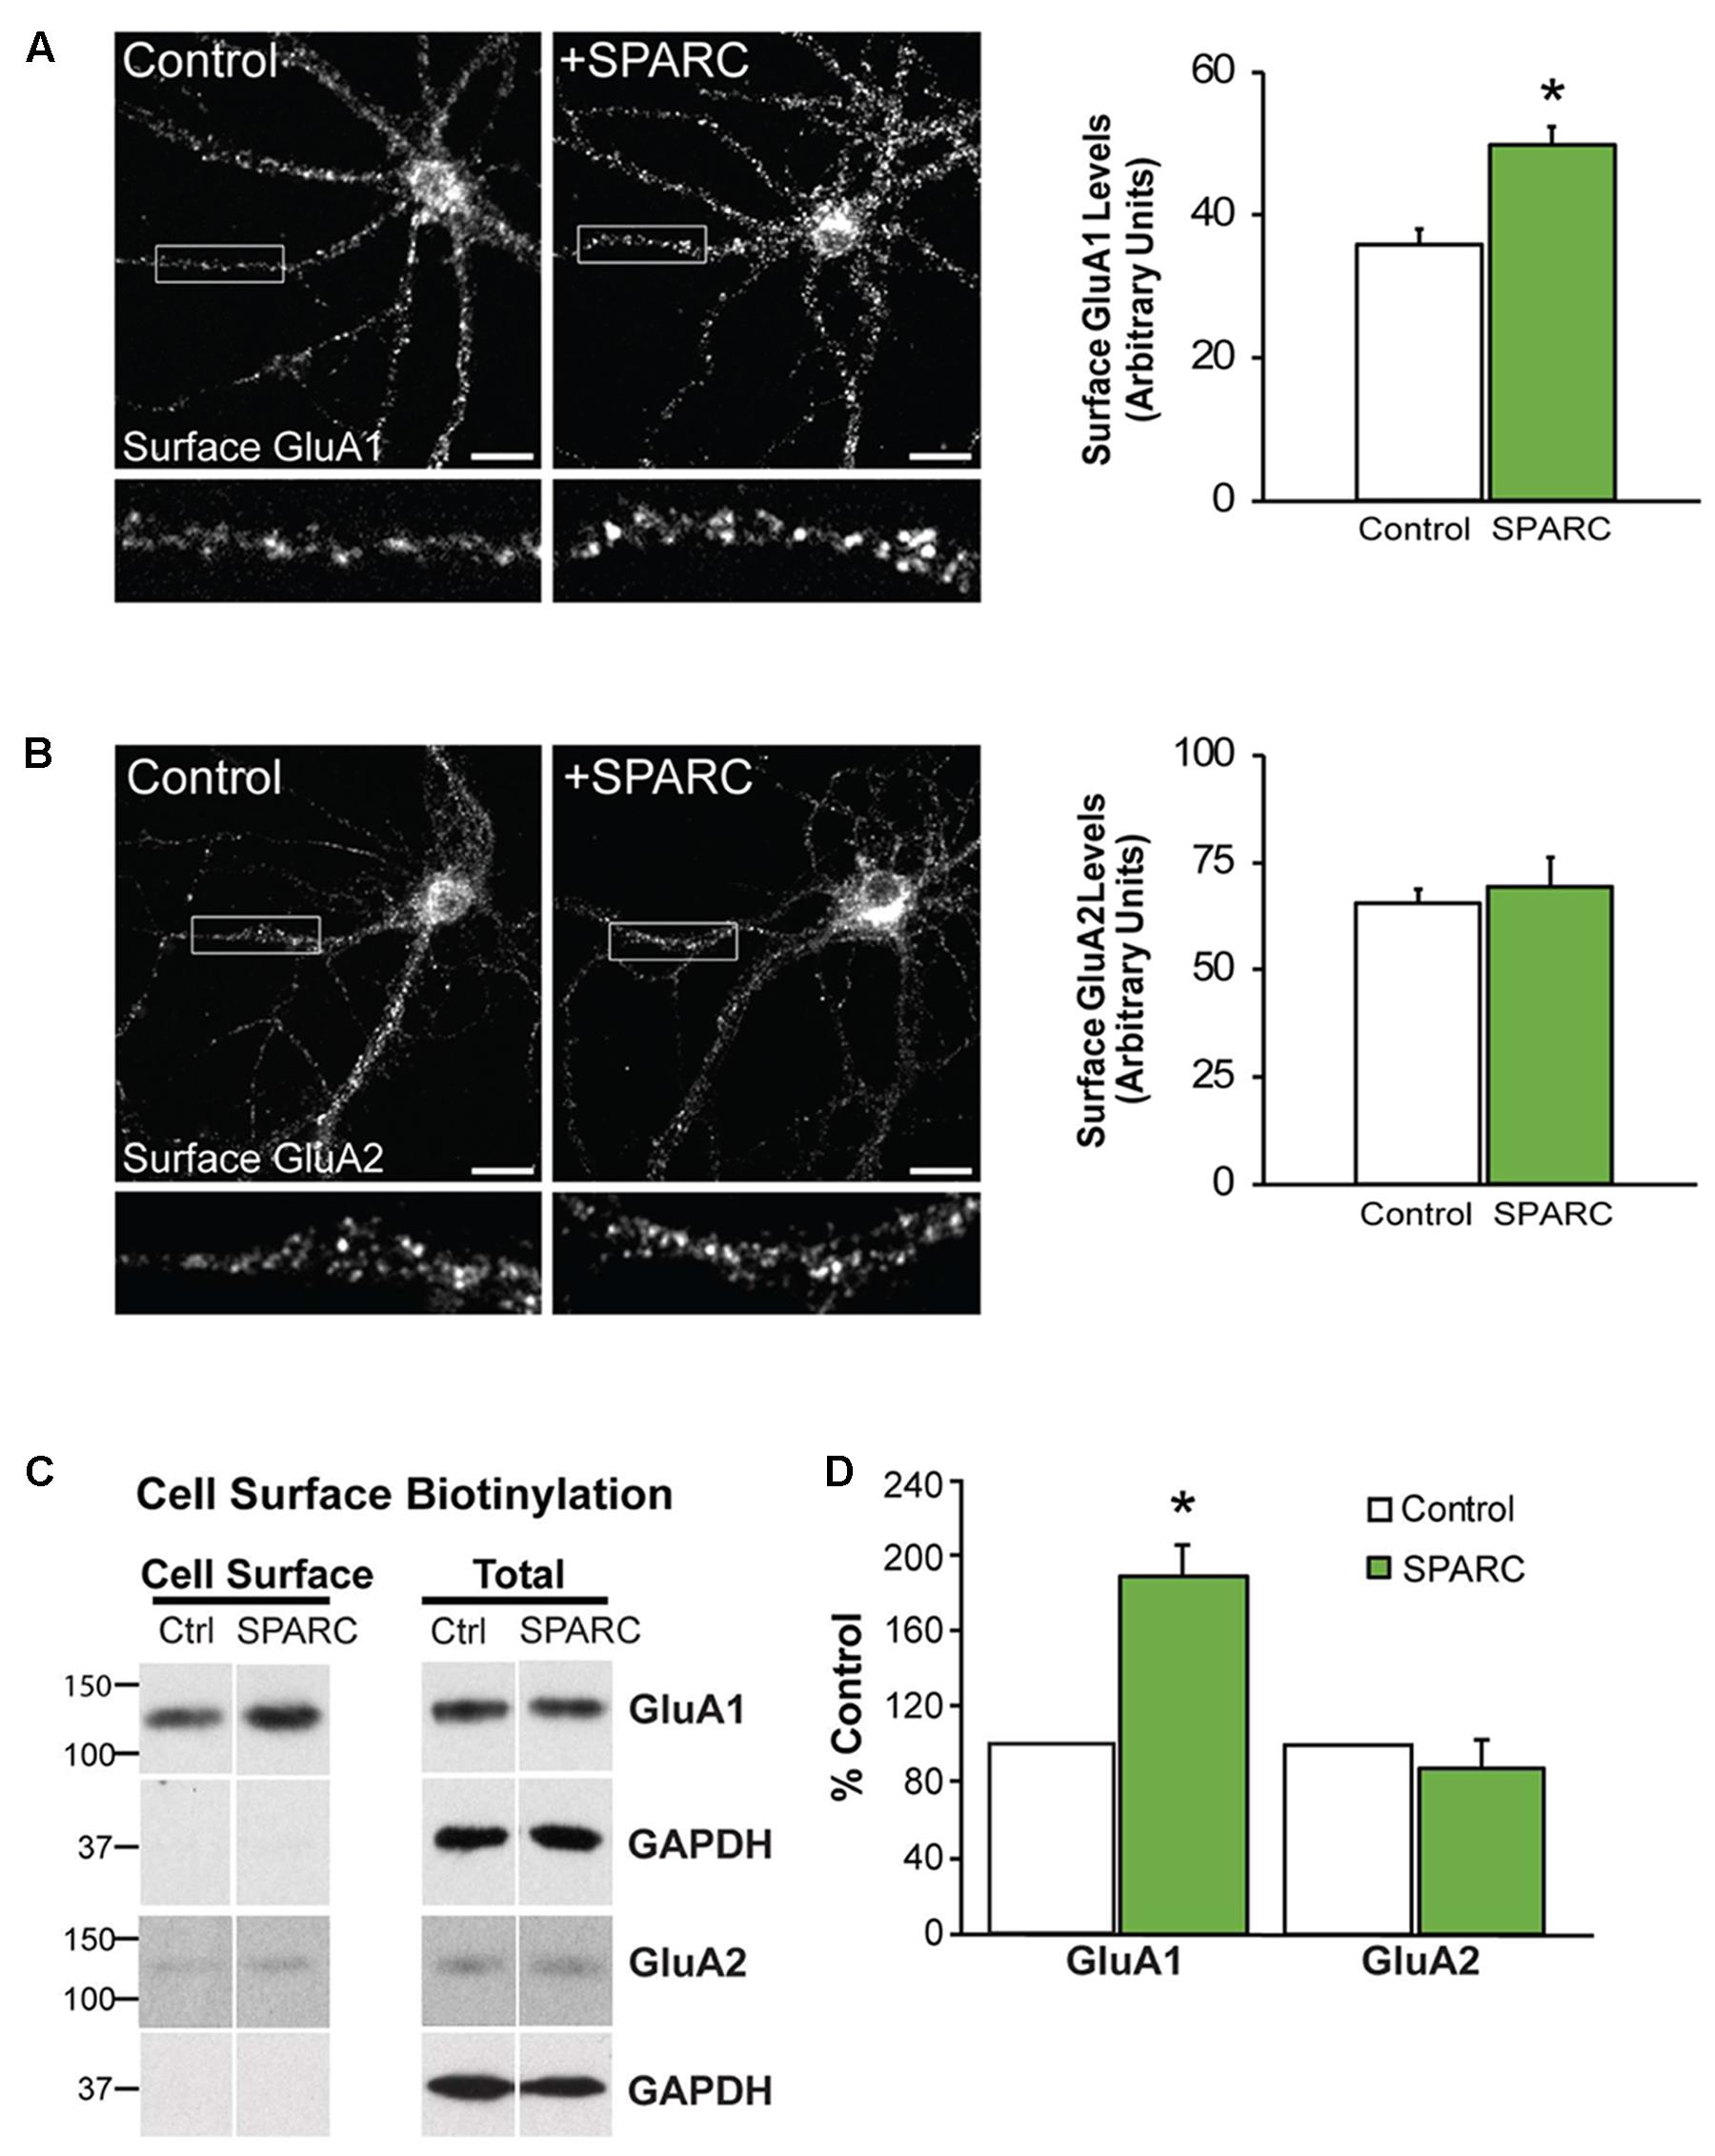 Frontiers | SPARC and GluA1-Containing AMPA Receptors